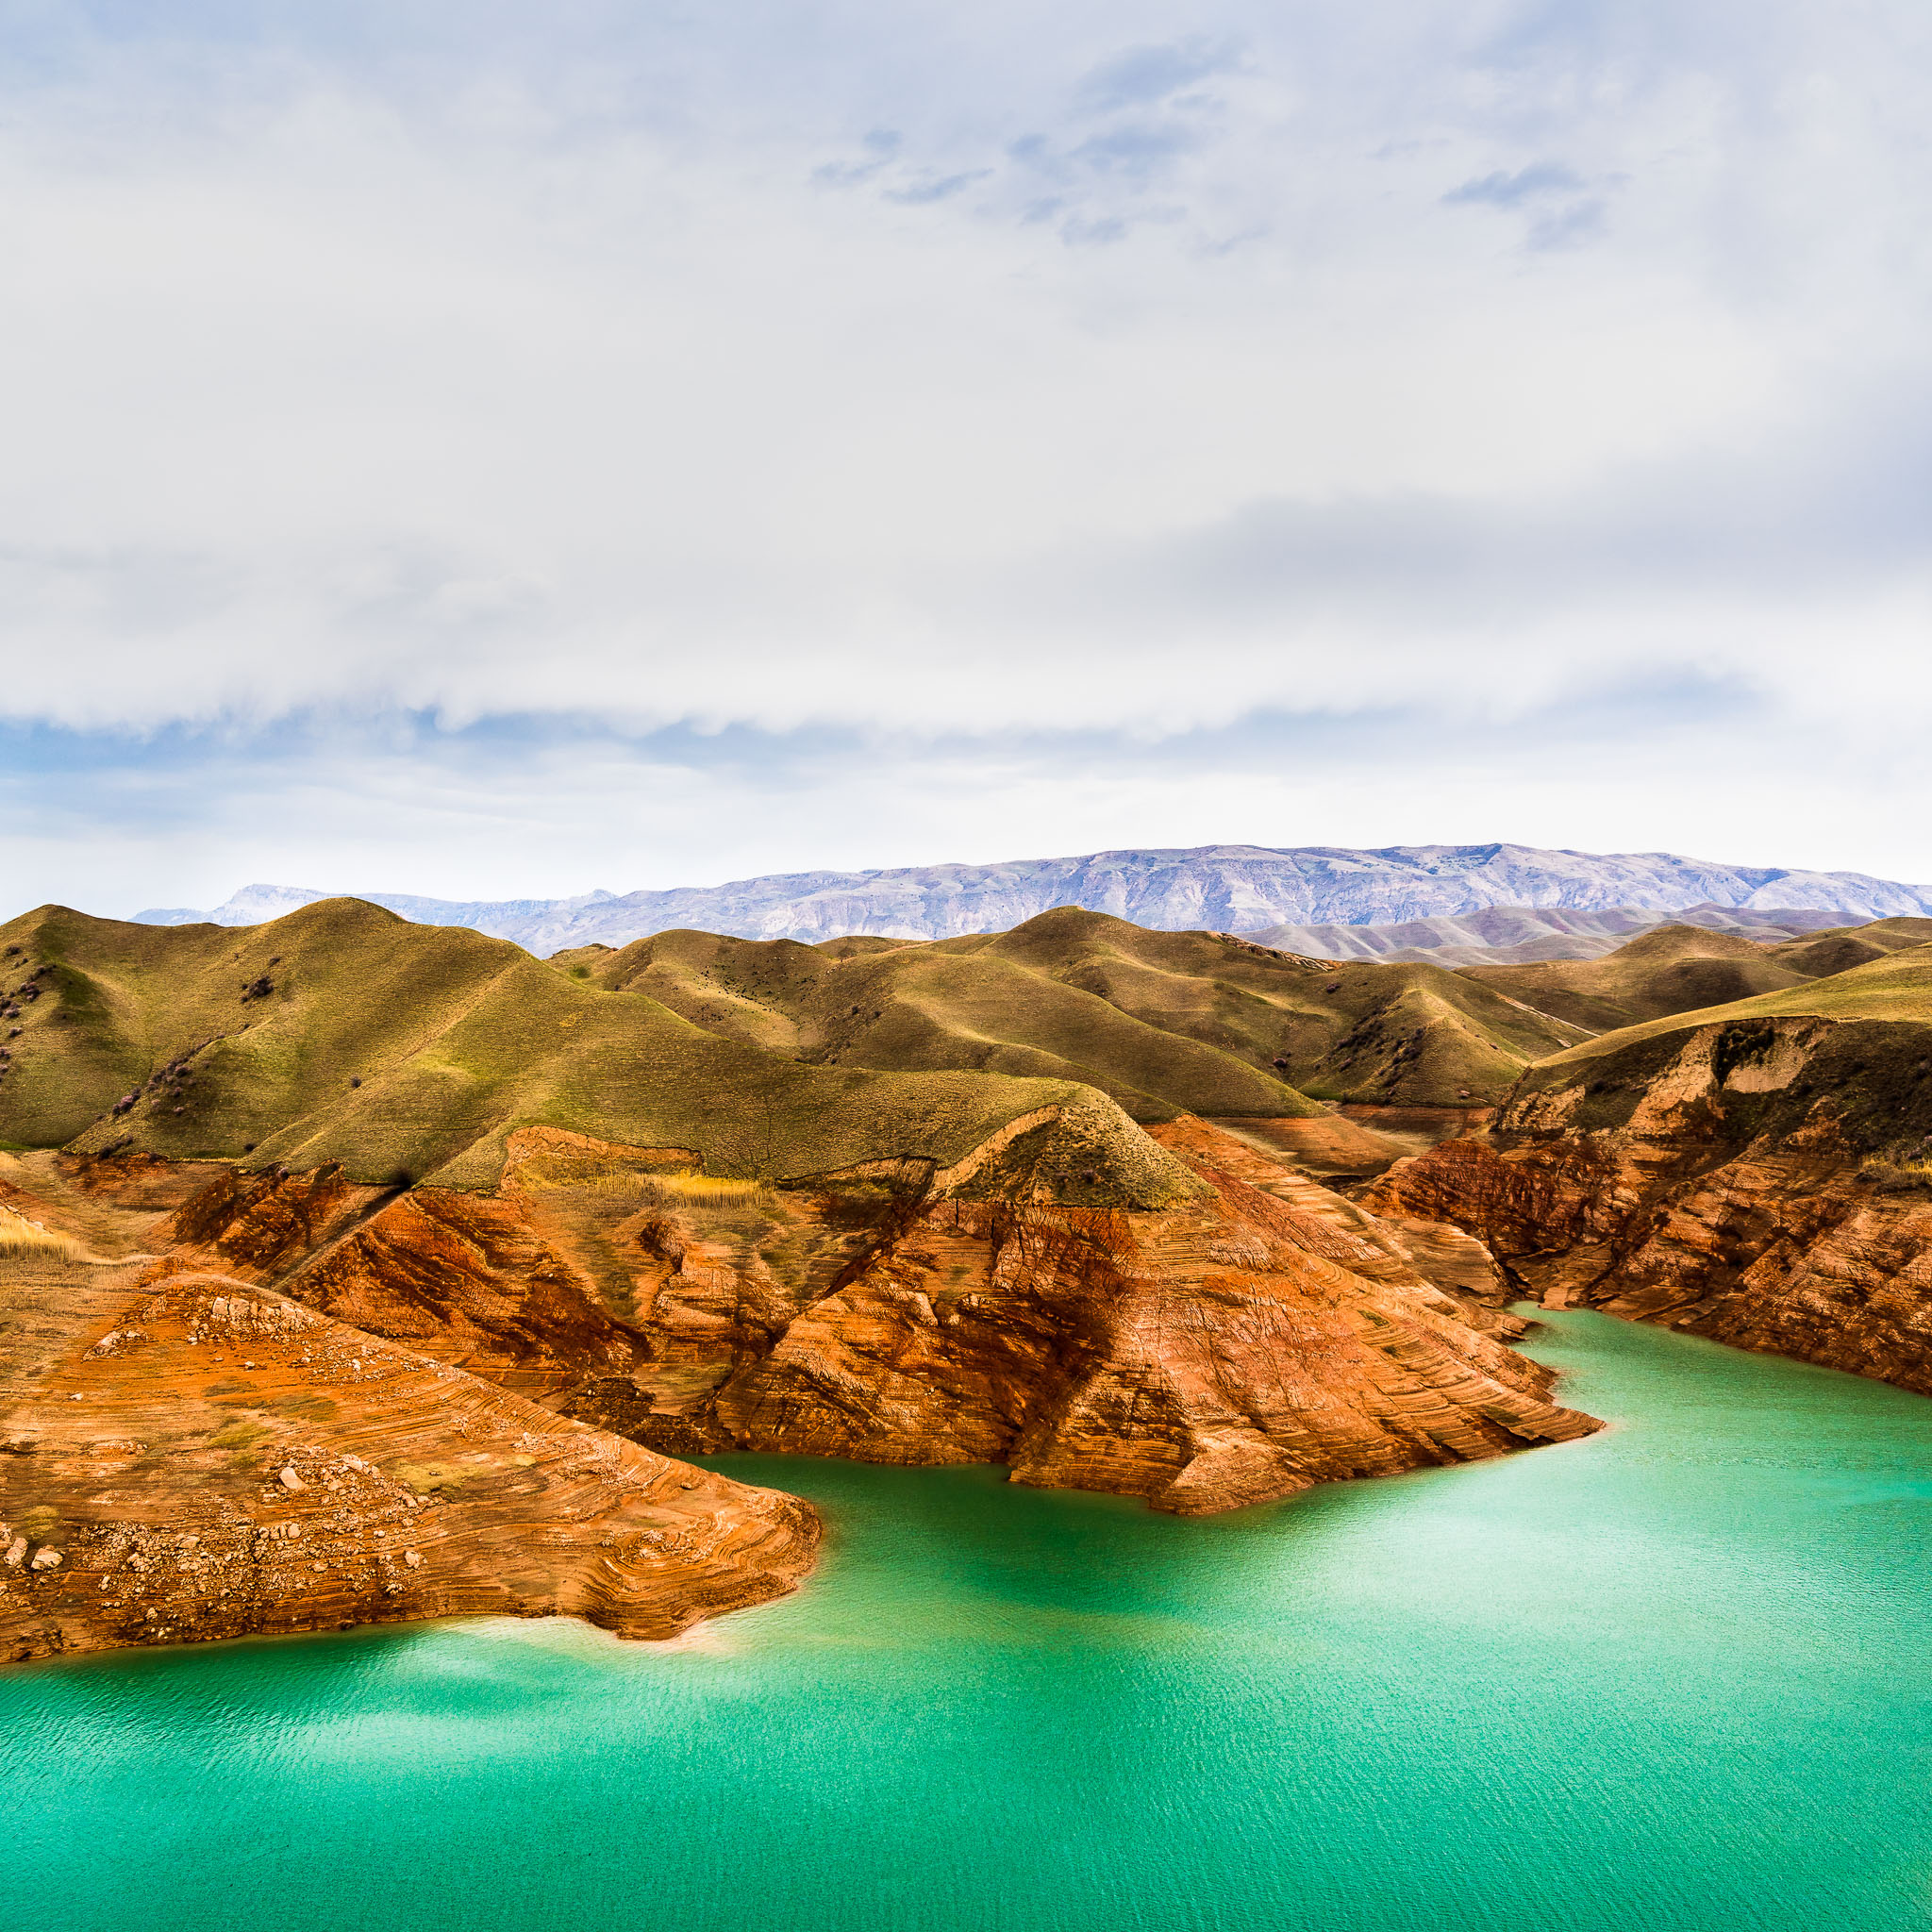 Nurek reservoir - Tajikistan - Landscape photography - Mountains - Water